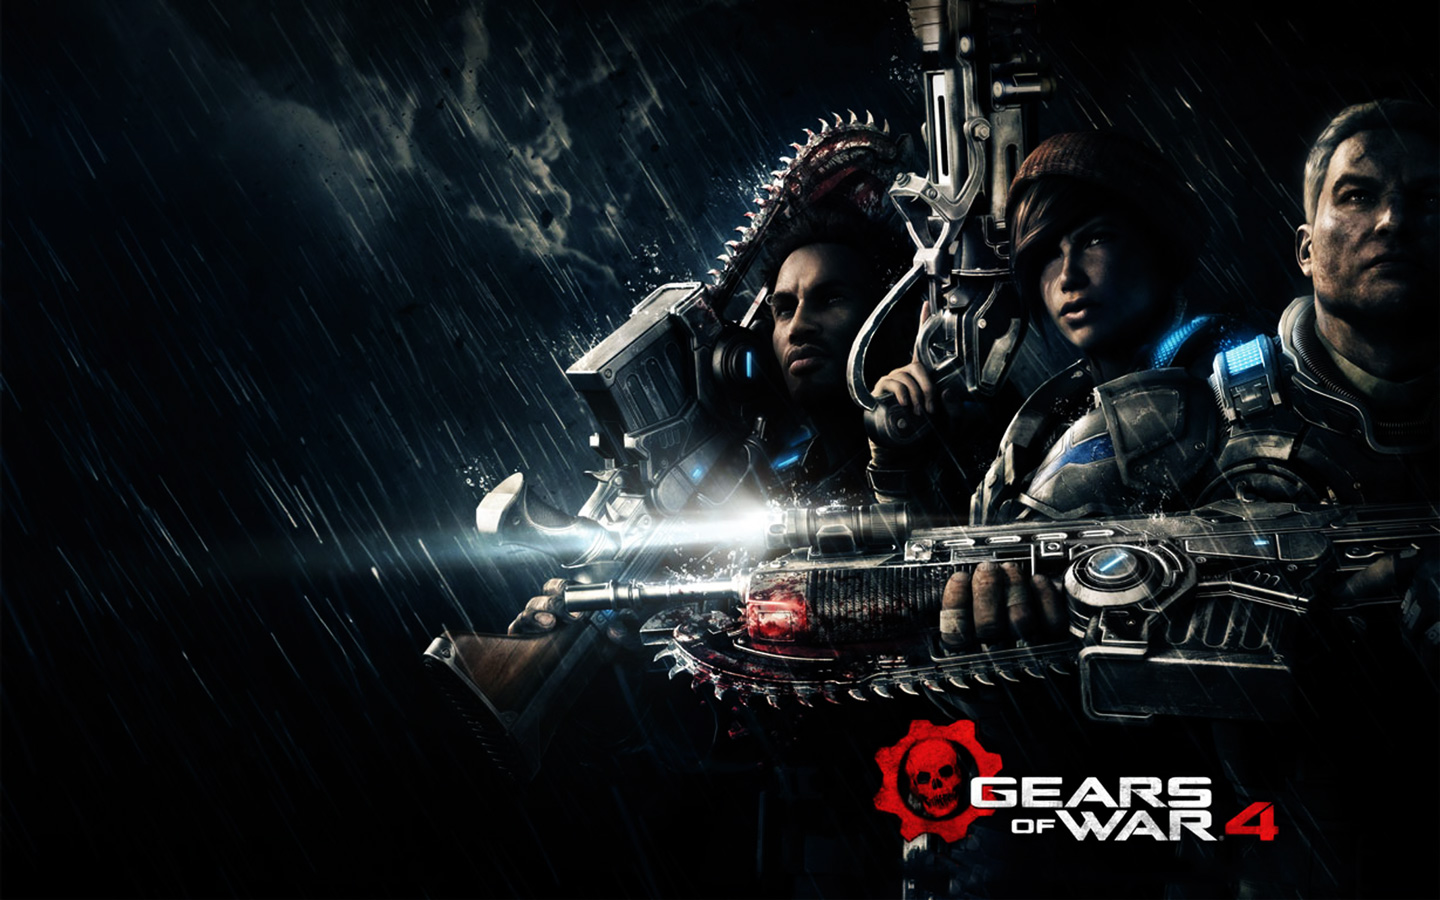 Gears of War 4 Wallpaper in 1440x900